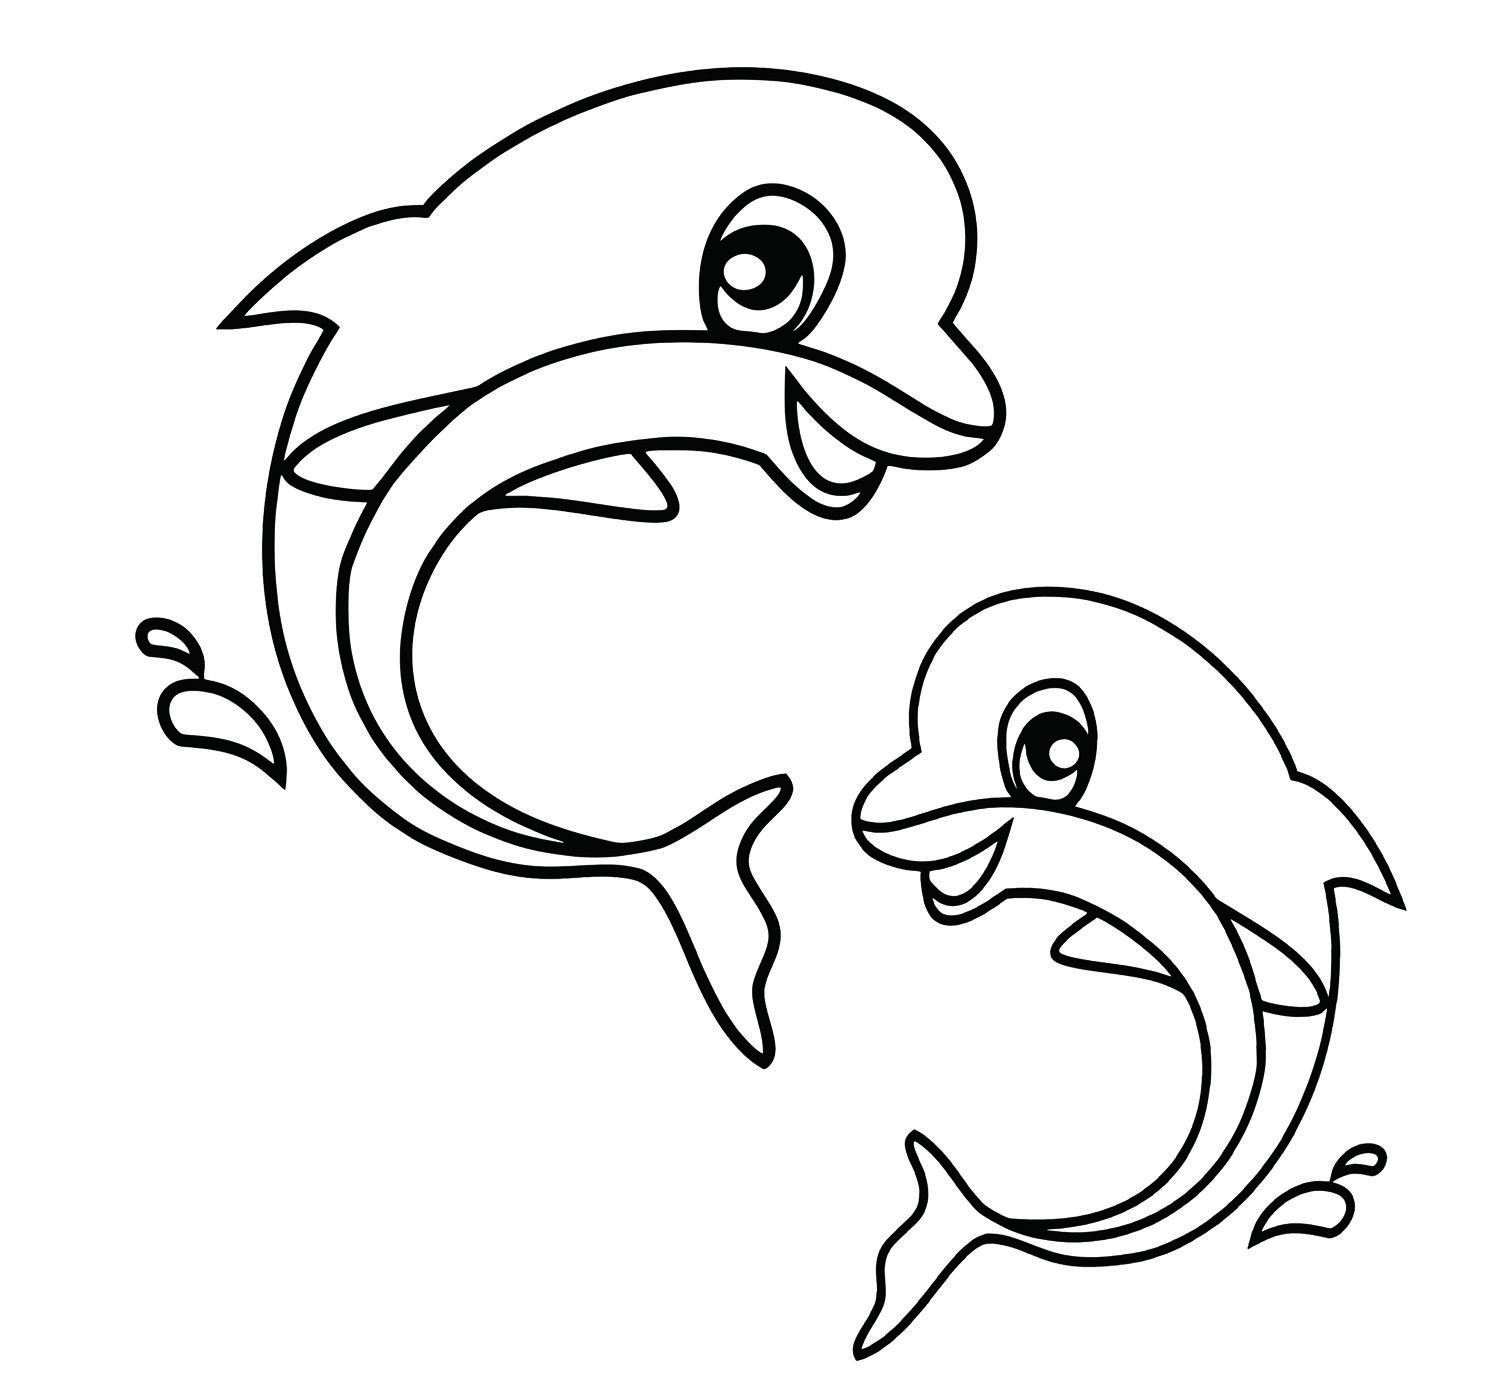 Coloring pages animals sea animal coloring pages free printable kids ocean animals coloring